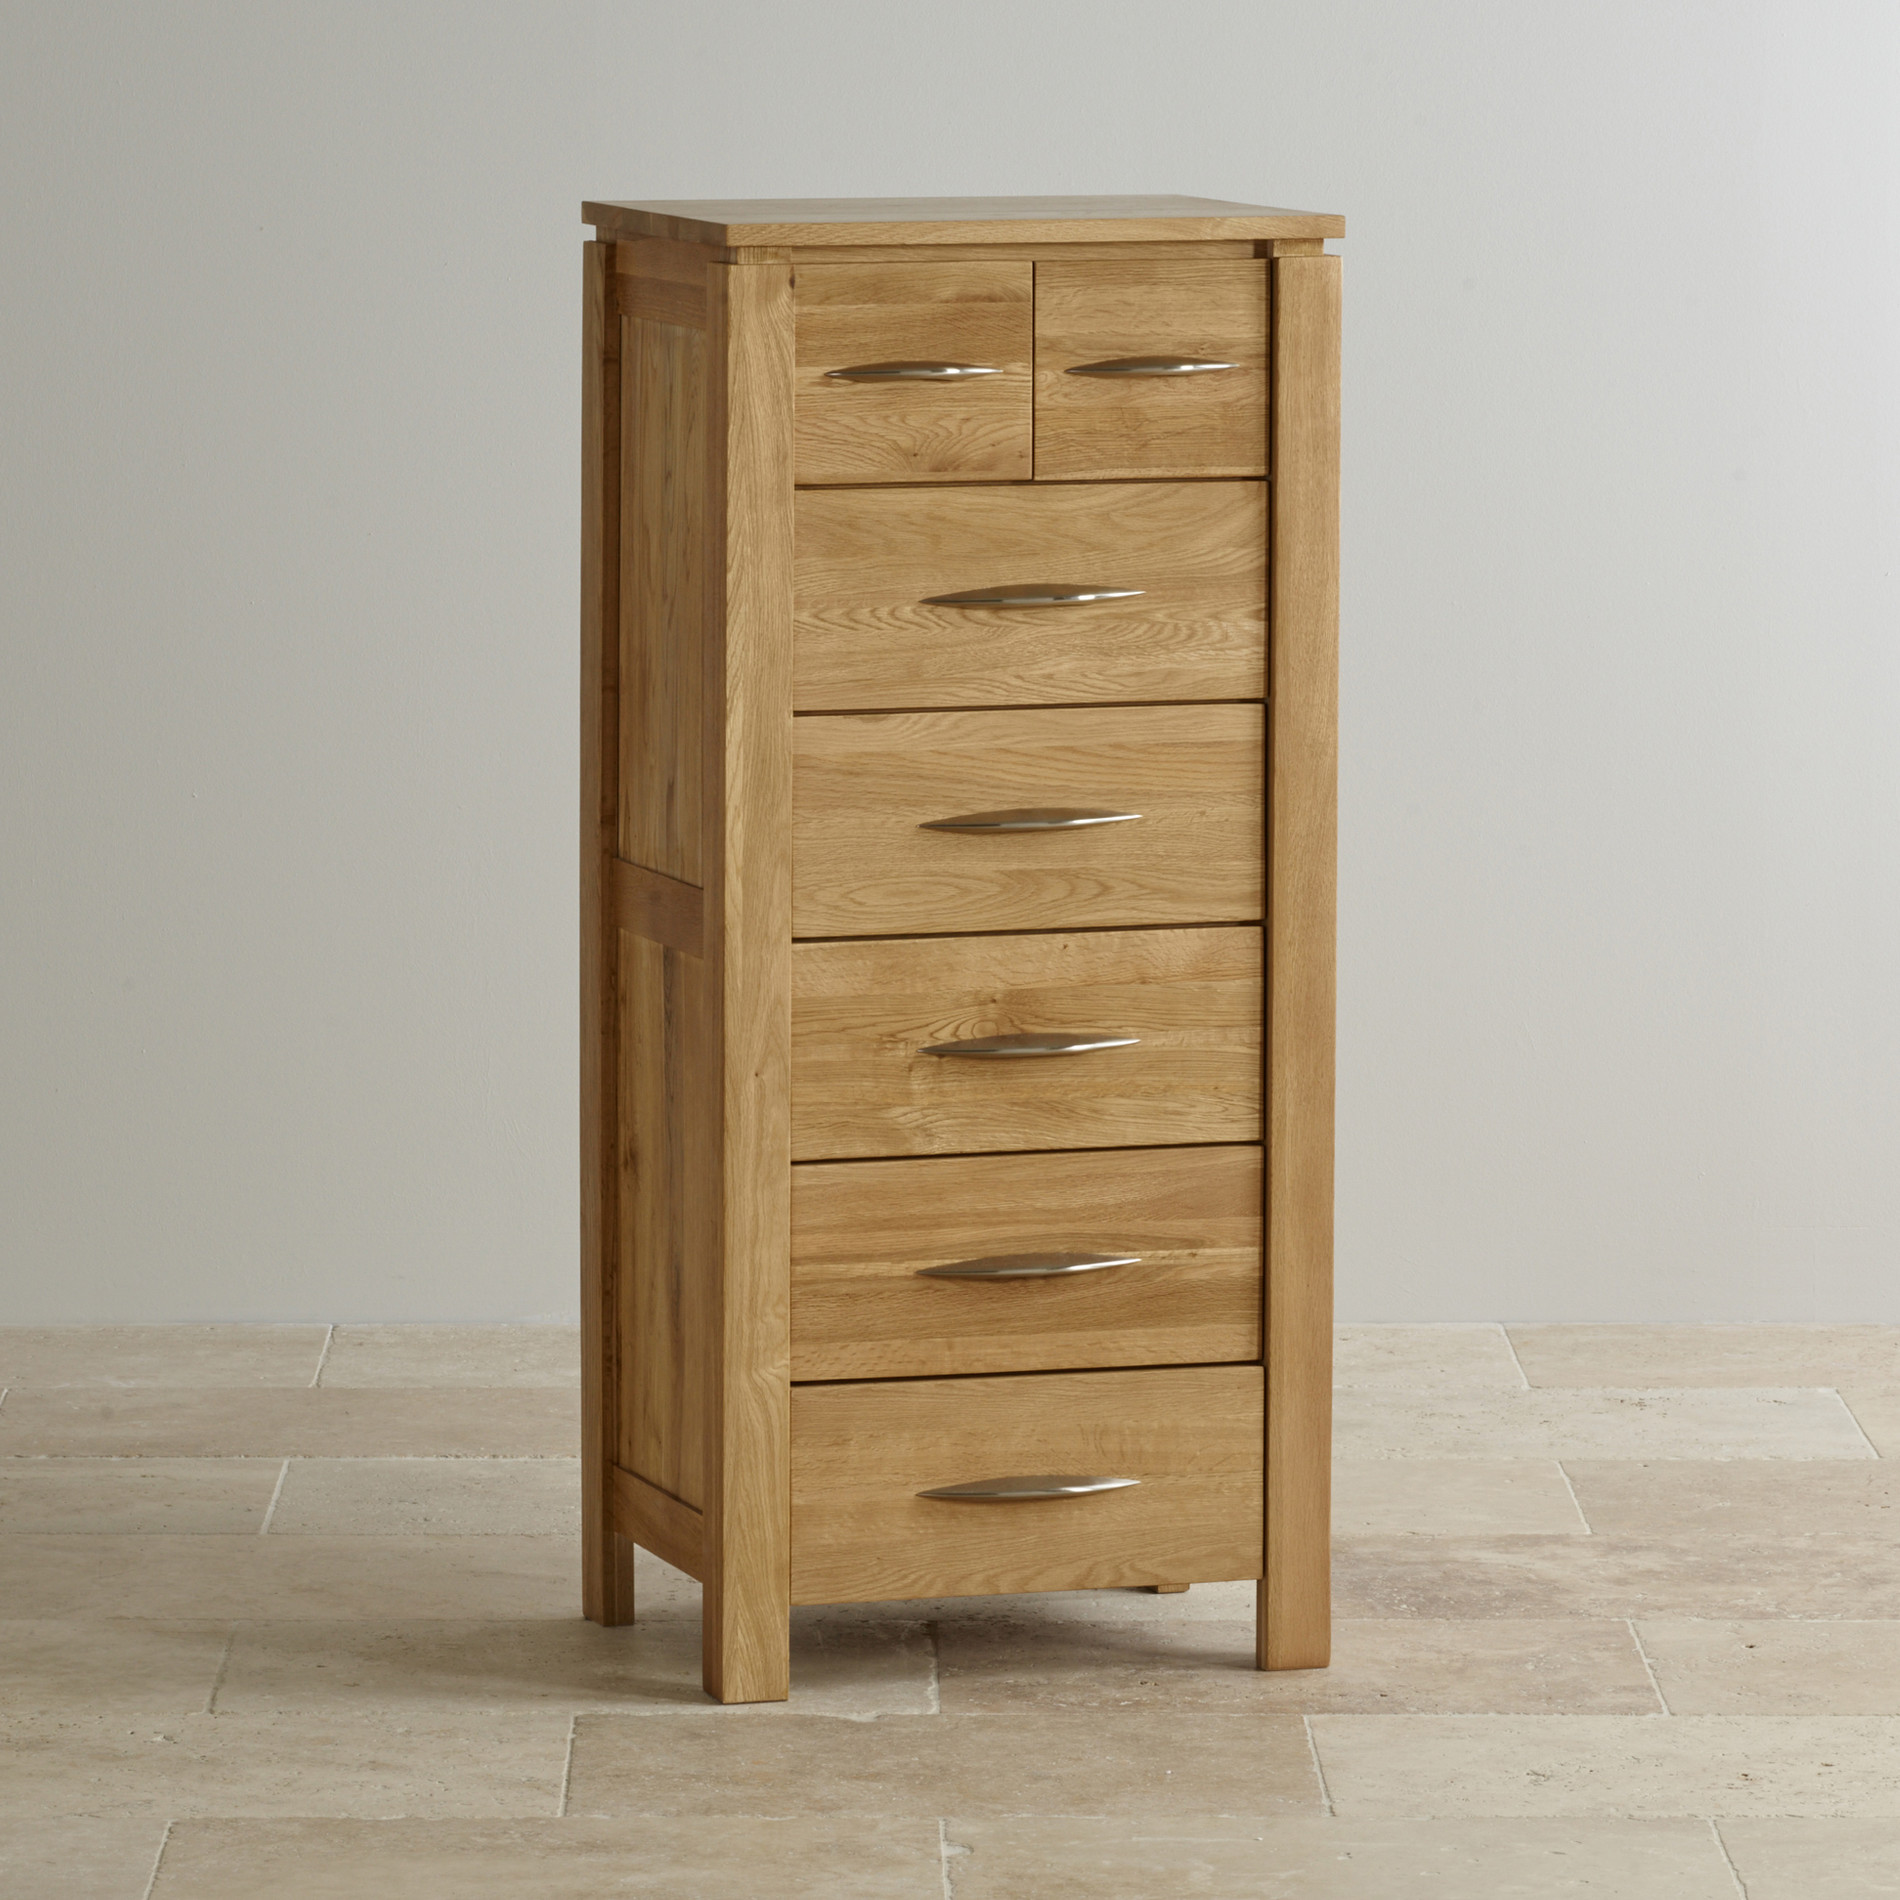 Galway Natural Solid Oak Tall 52 Drawer Chest : galway natural solid oak tall 52 drawer chest 55ddd52da5f16 from www.oakfurnitureland.co.uk size 1900 x 1900 jpeg 564kB